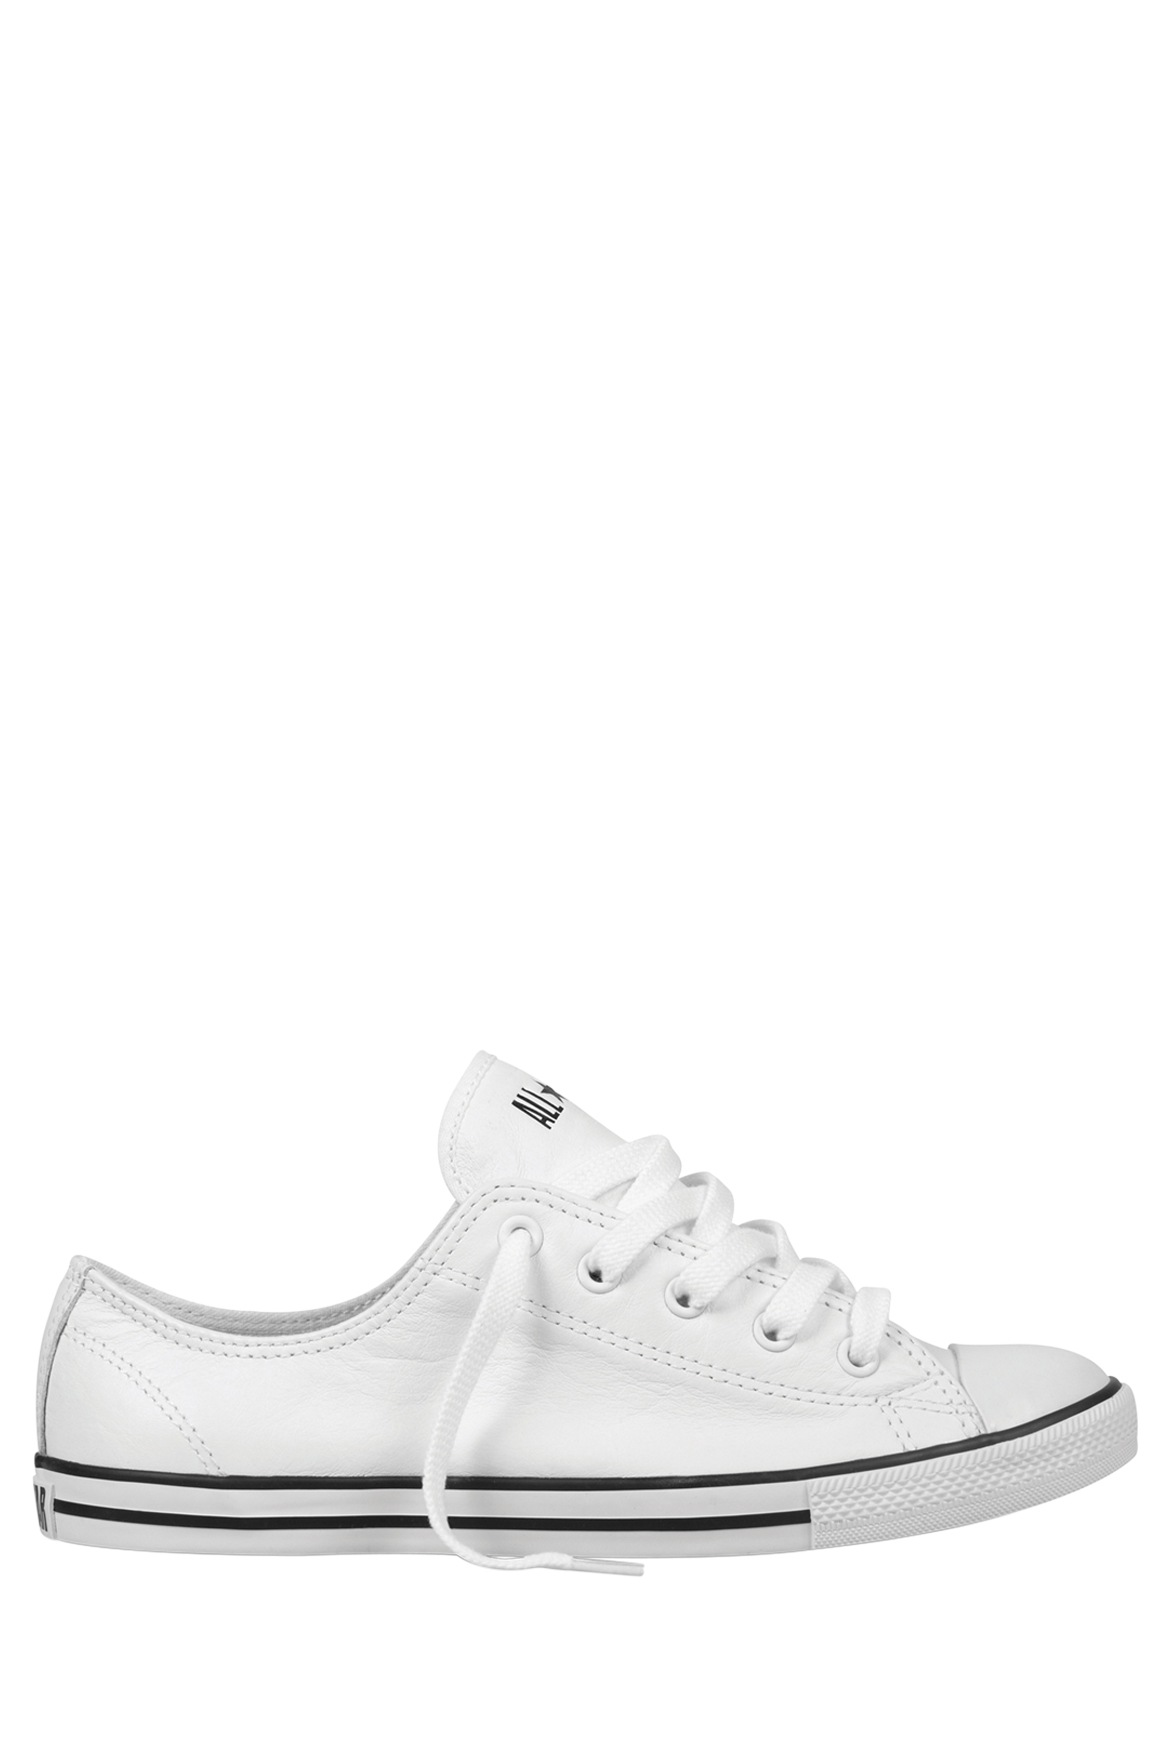 converse chuck taylor all star dainty lo